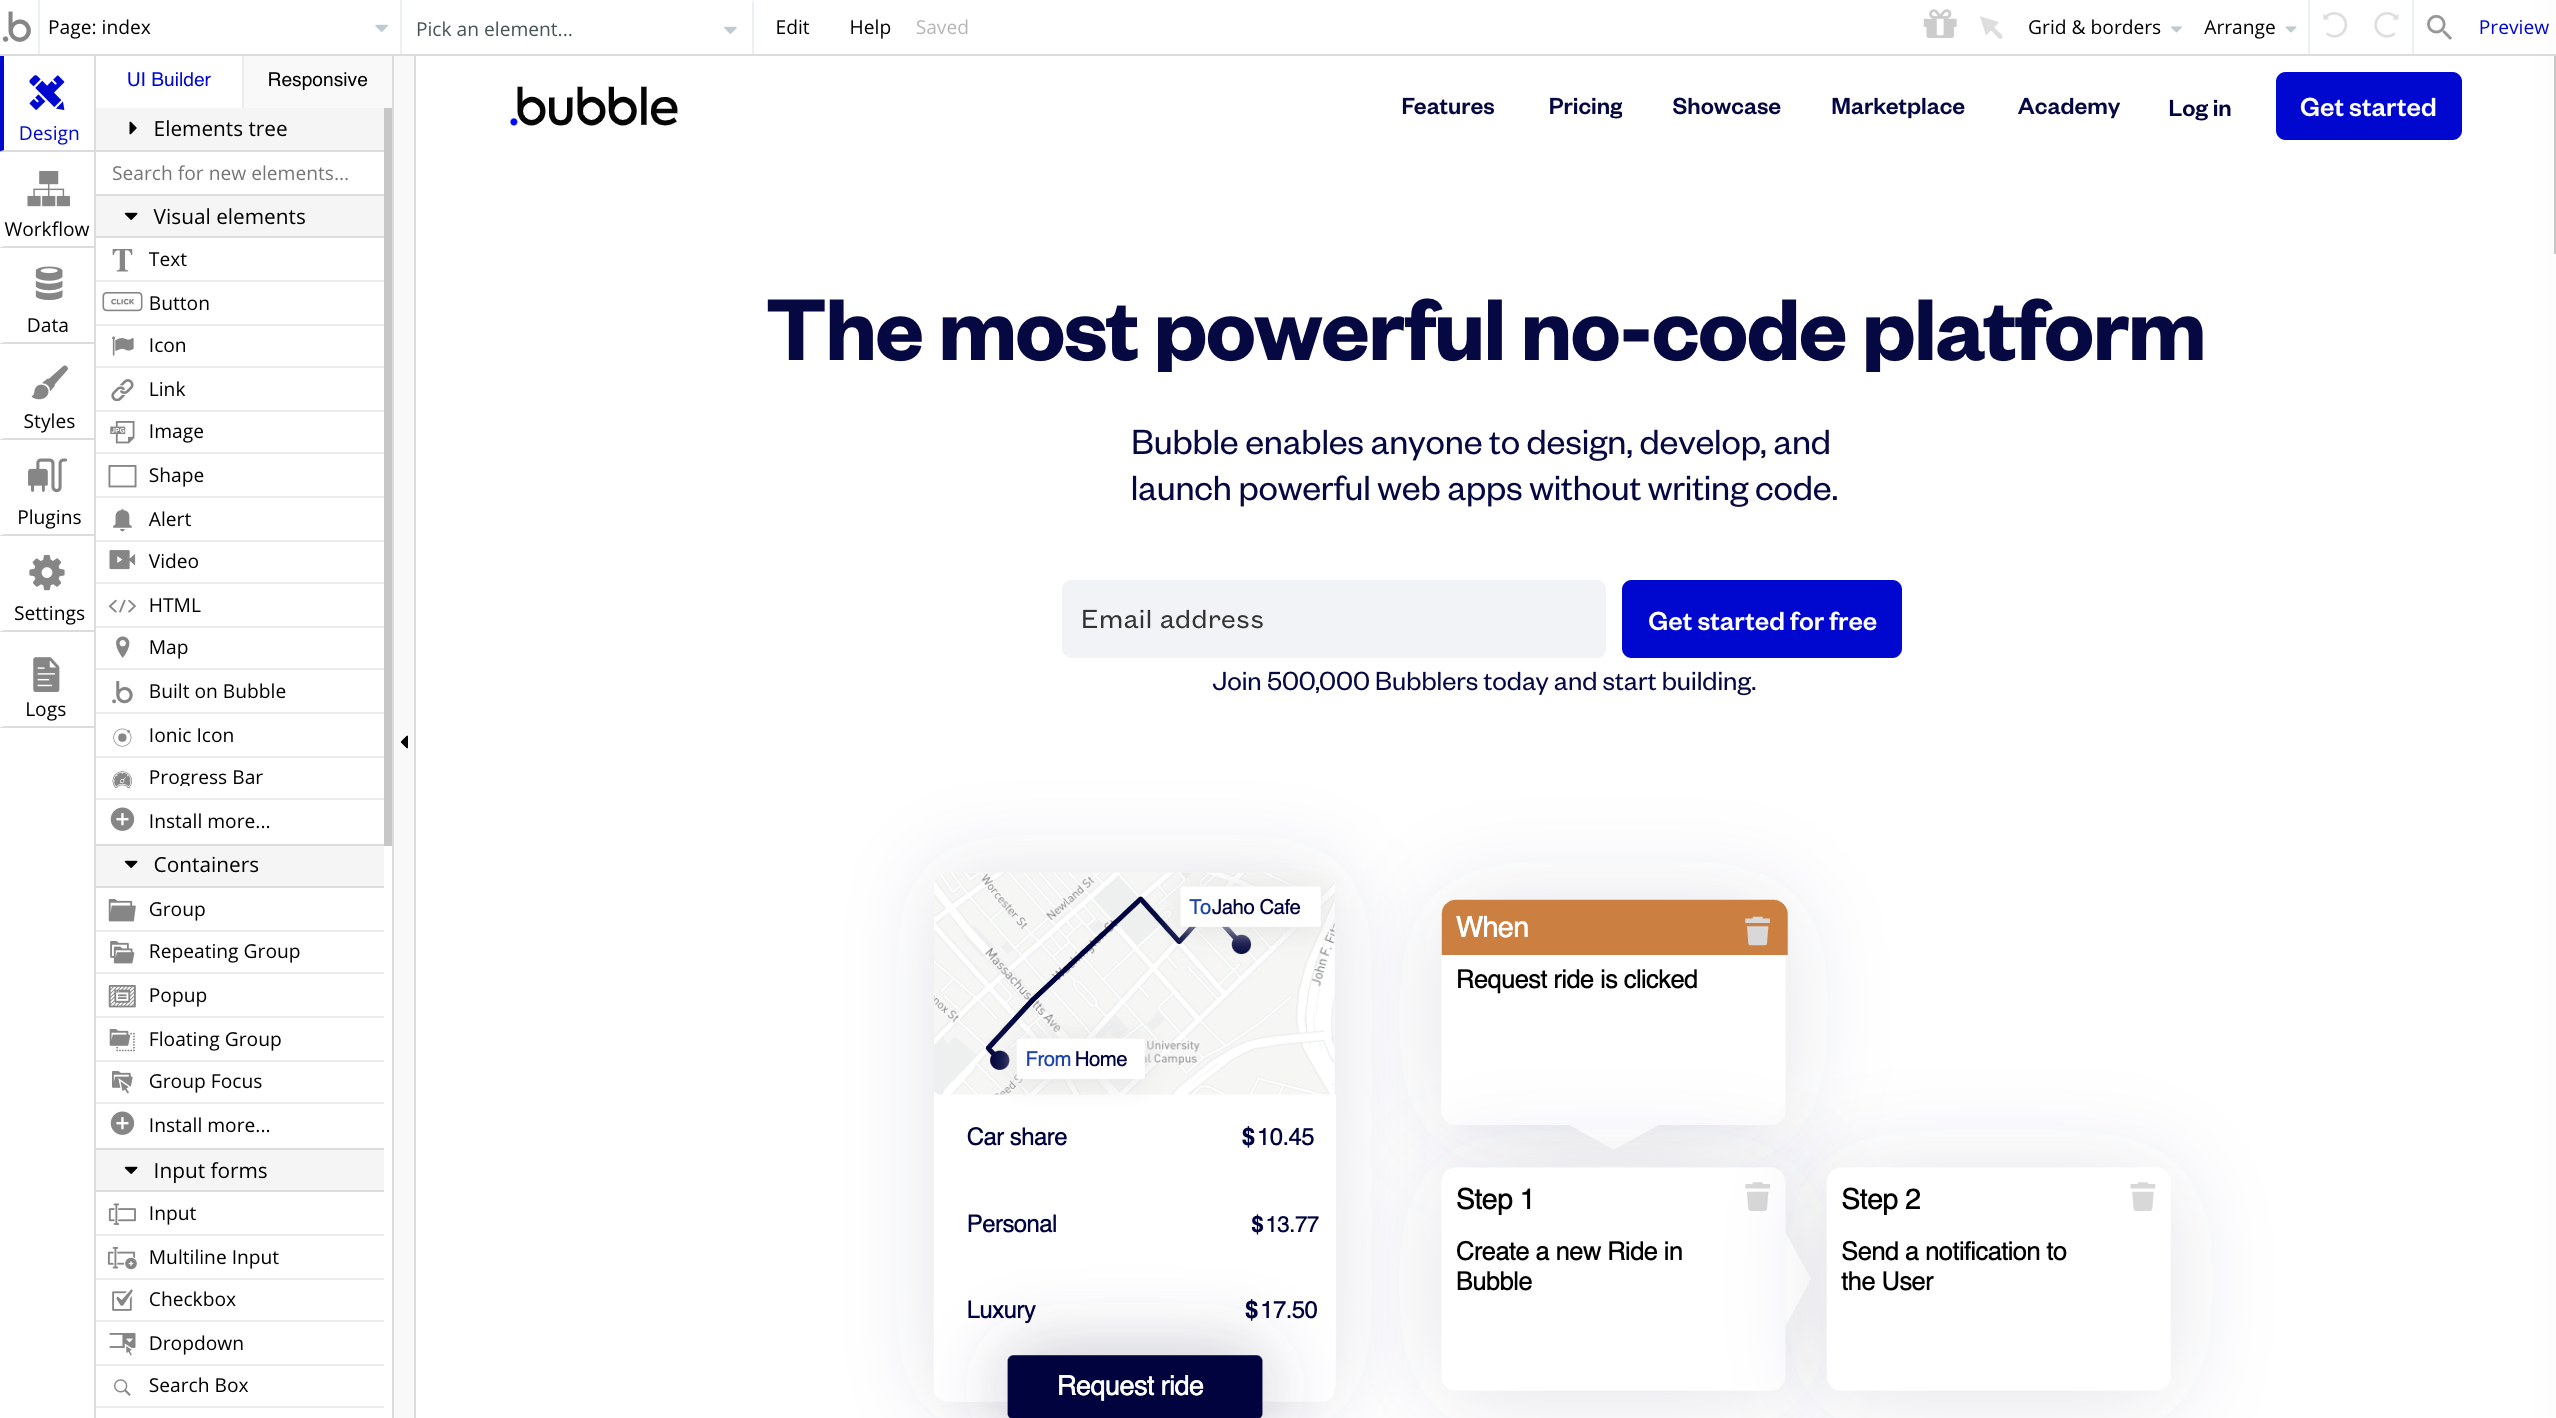 No-code Bubble raises $100M to make technical co-founders obsolete